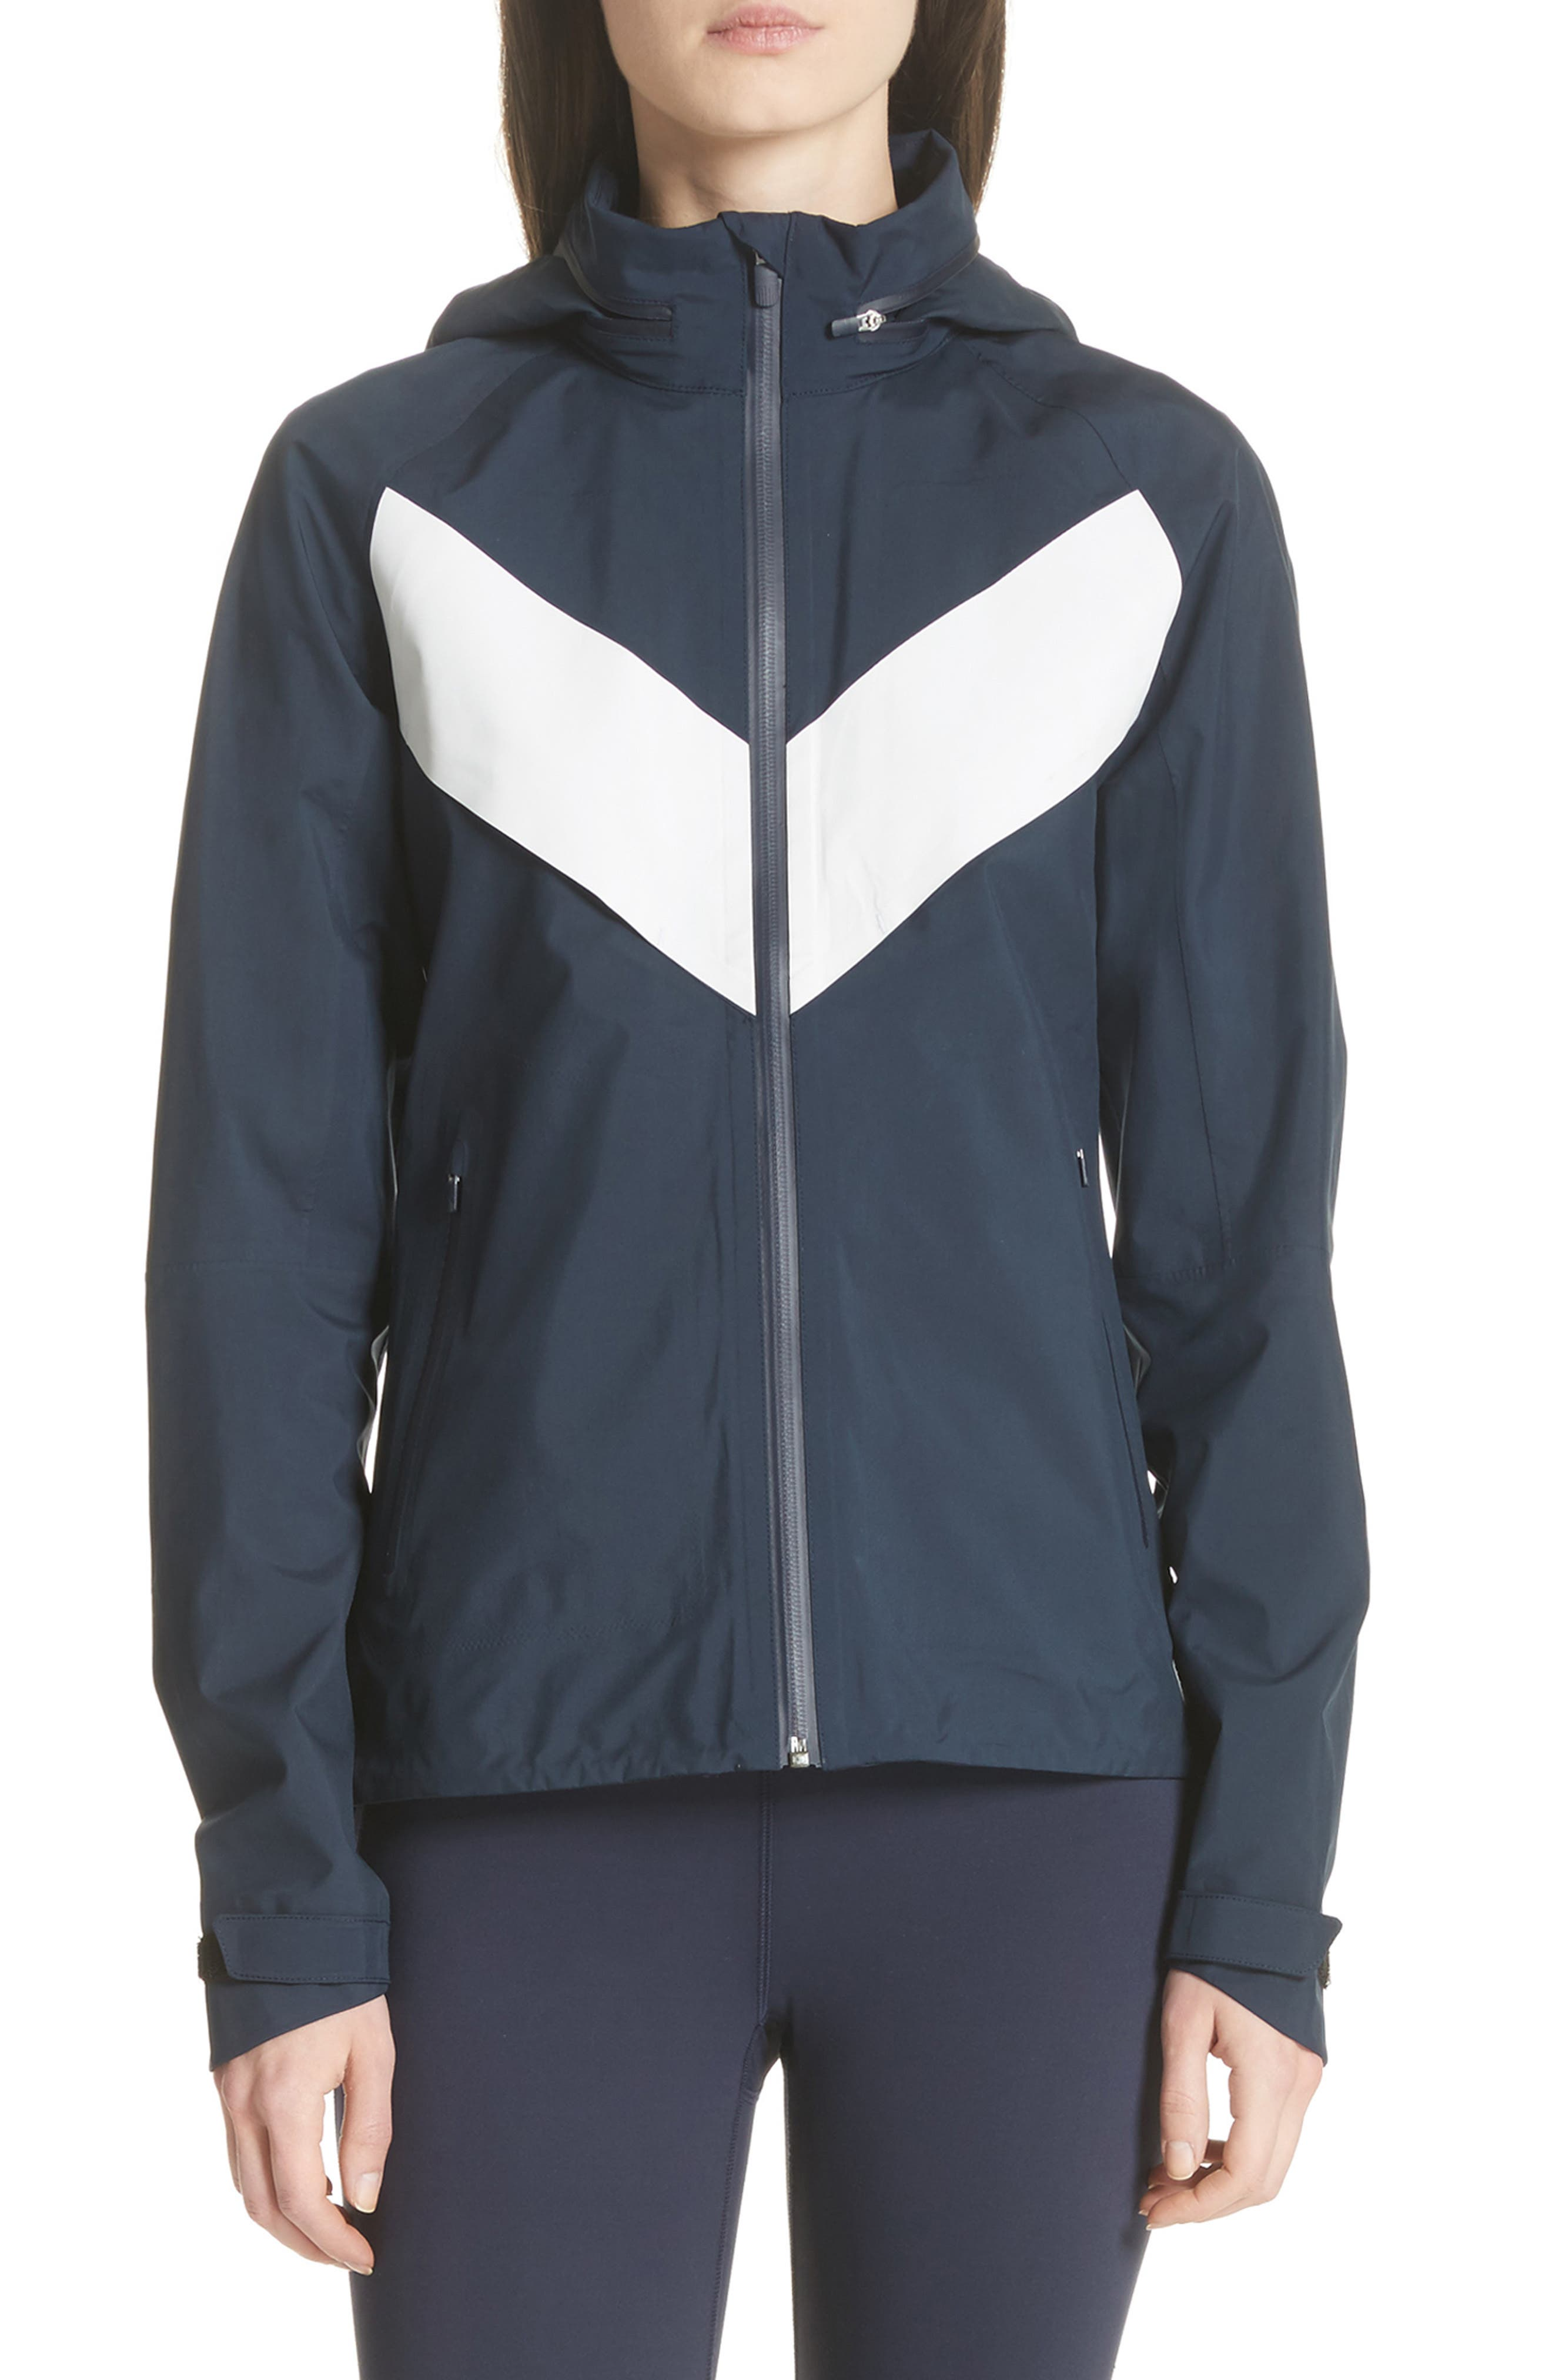 All Weather Run Jacket,                             Main thumbnail 1, color,                             Tory Navy/ White Snow